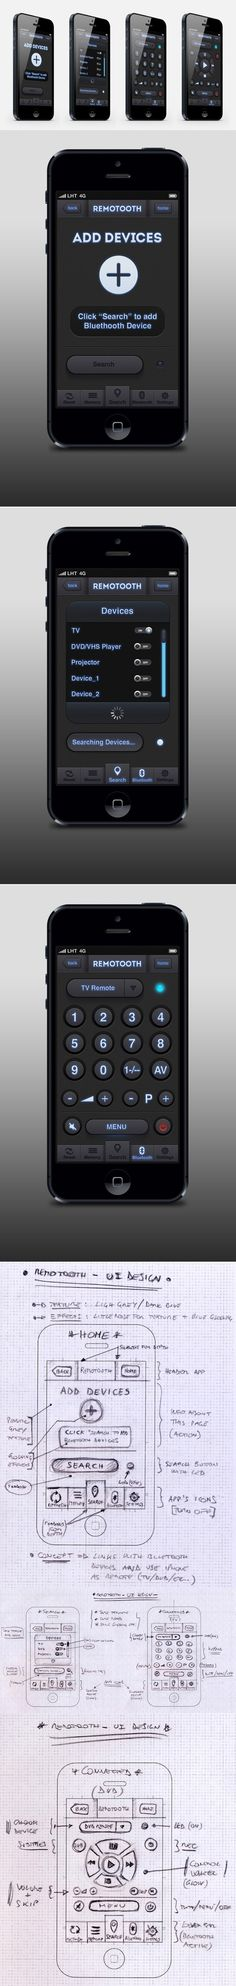 """""""REMOTOOTH"""" - UI Design for iPhone by Tobia Crivellari, via Behance"""